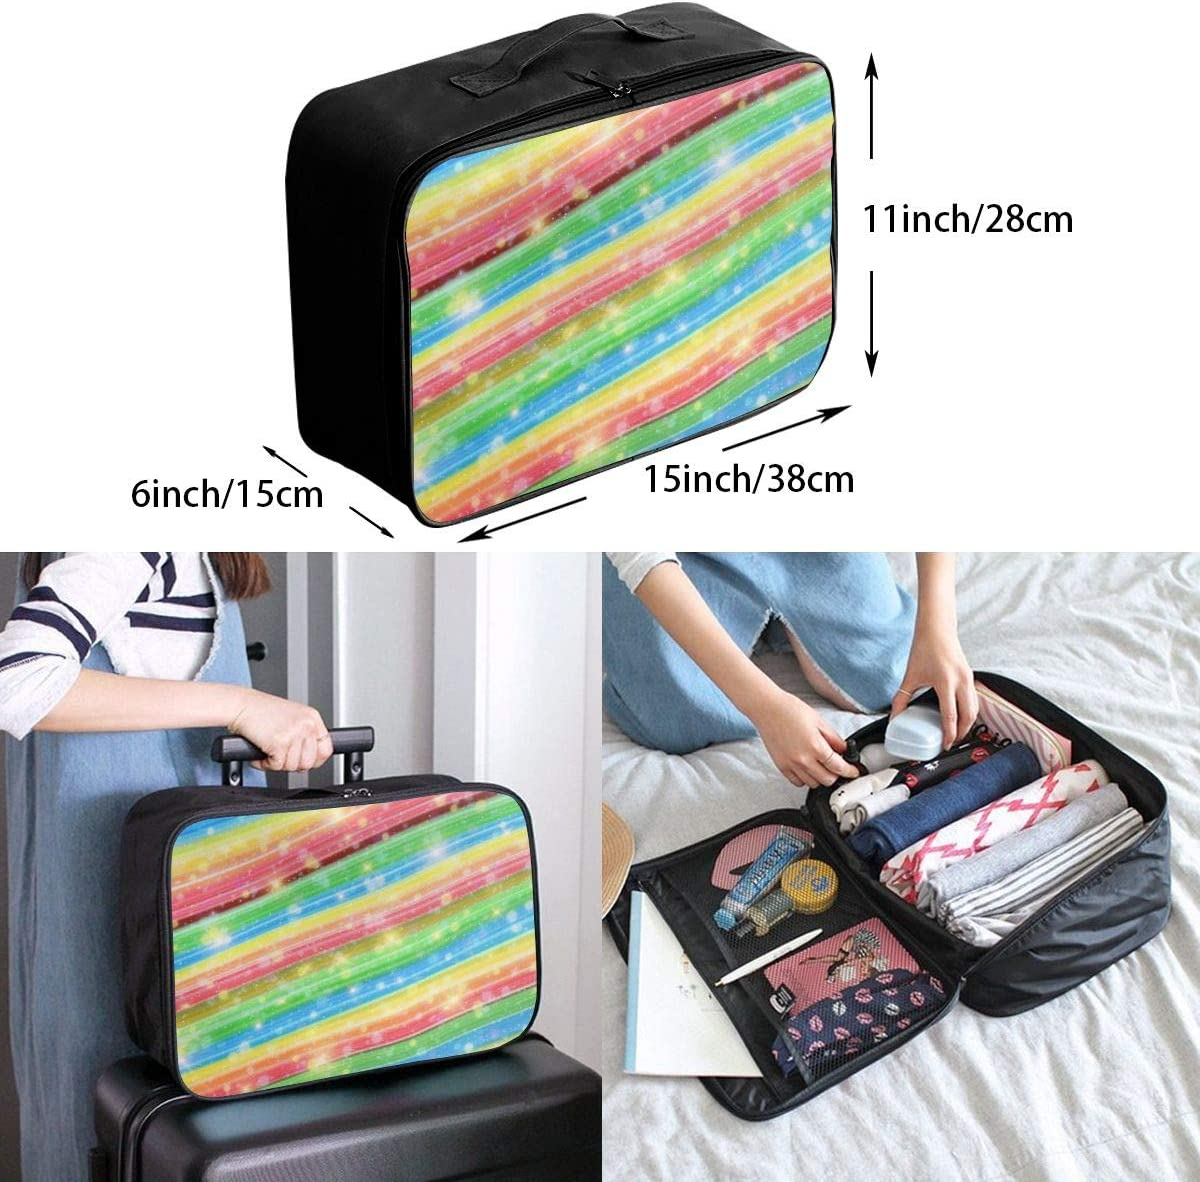 Multicolored Rainbow Marble Lightweight LargeTravel Storage Luggage Trolley Bag Travel Duffel Bags Carry-On Tote